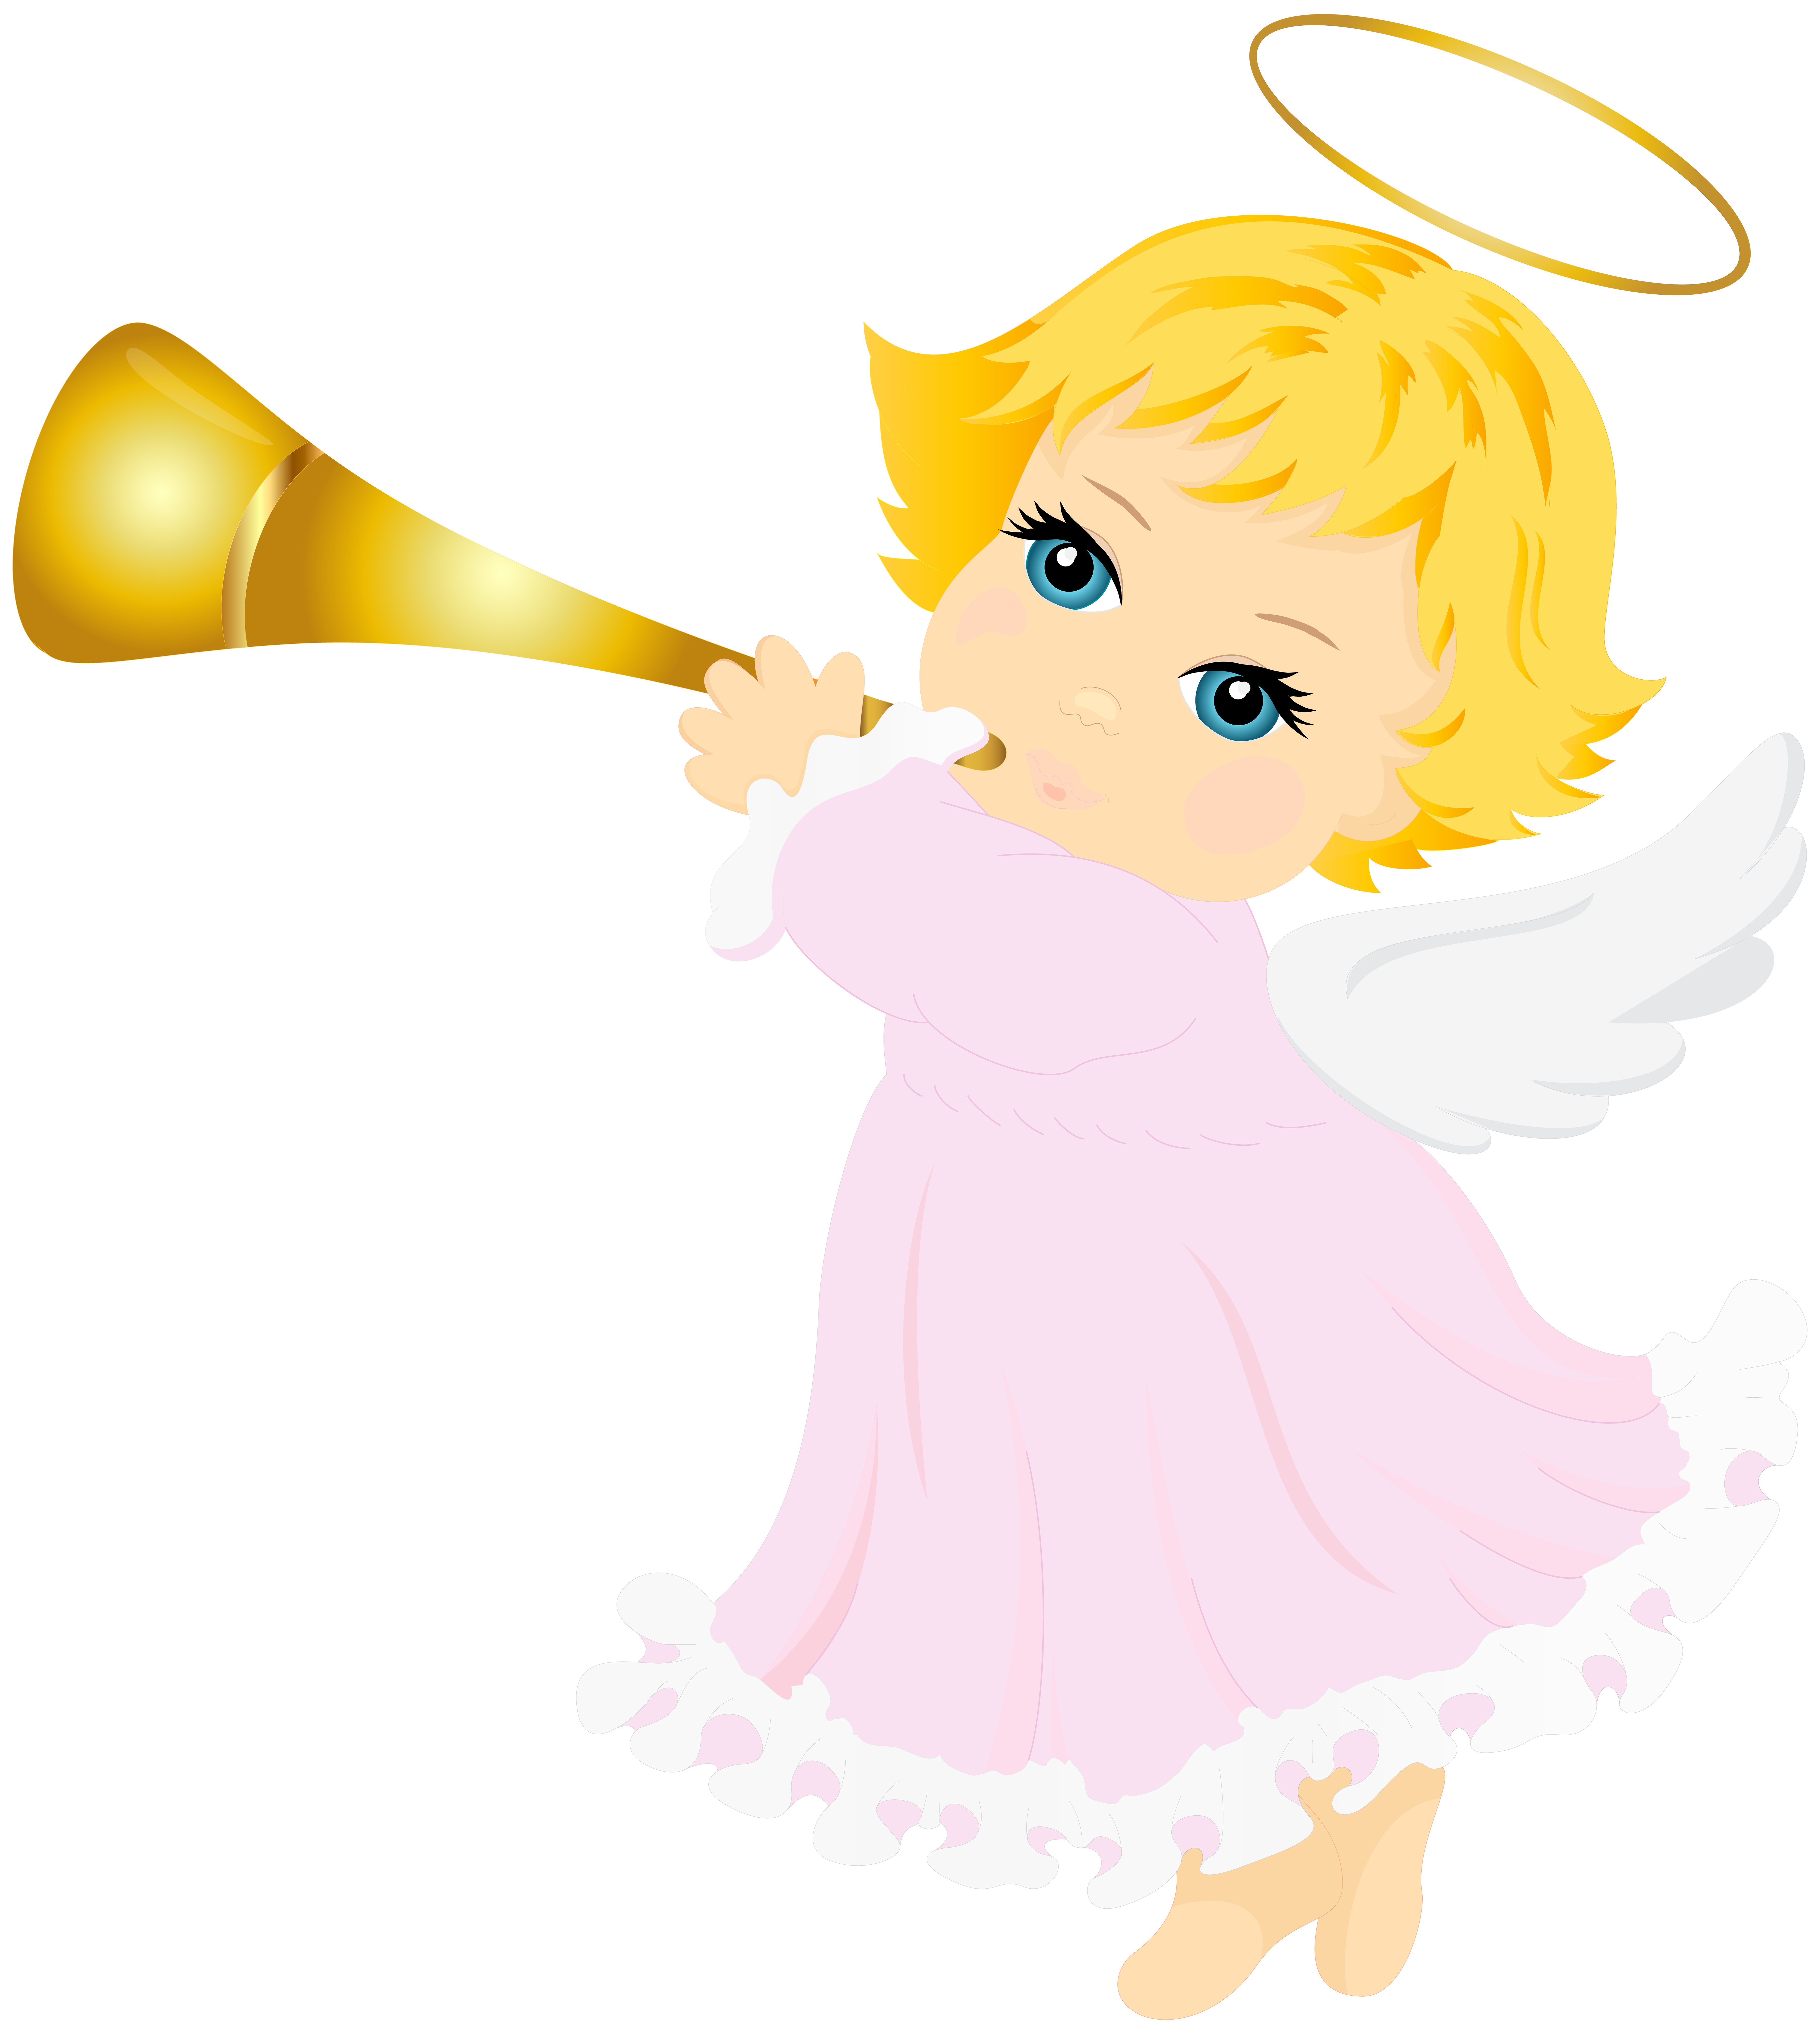 Angel halloween clipart clip royalty free Angel Transparent Clip Art Image | Gallery Yopriceville - High ... clip royalty free